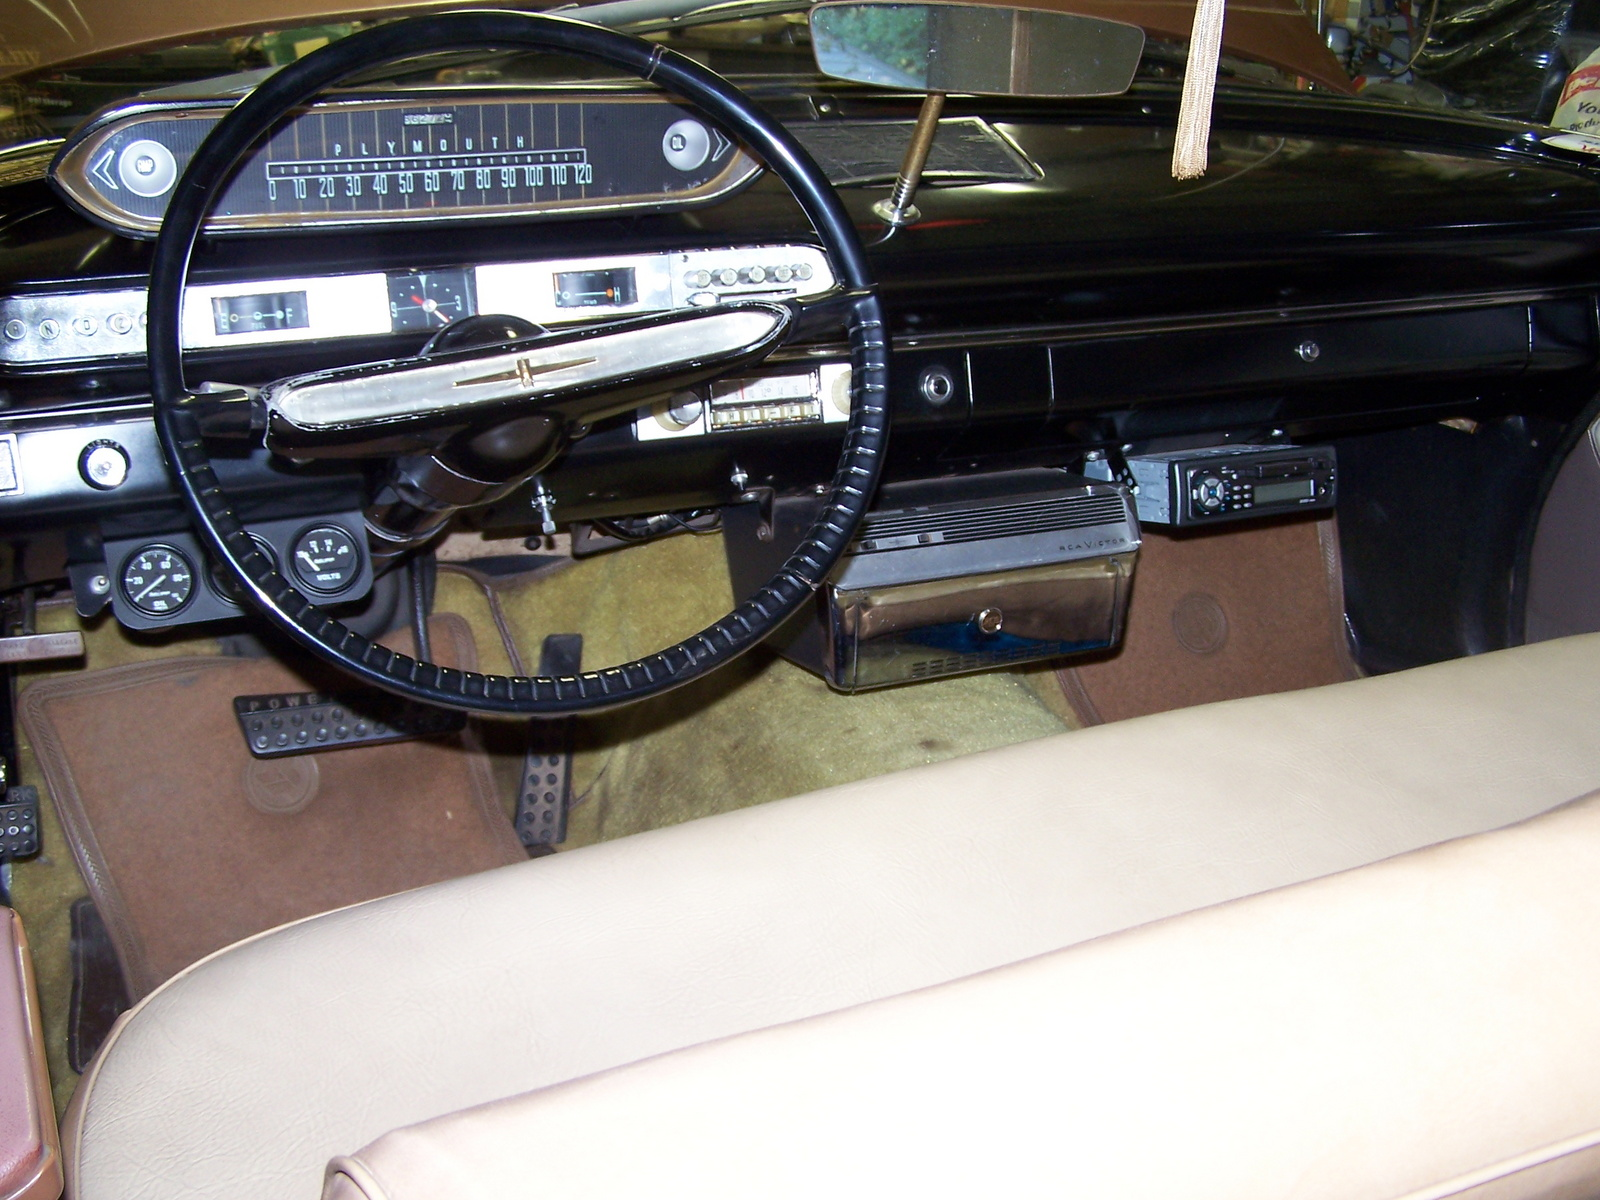 1959 plymouth sport fury interior related keywords - 1960 Plymouth Savoy Interior Pictures Cargurus